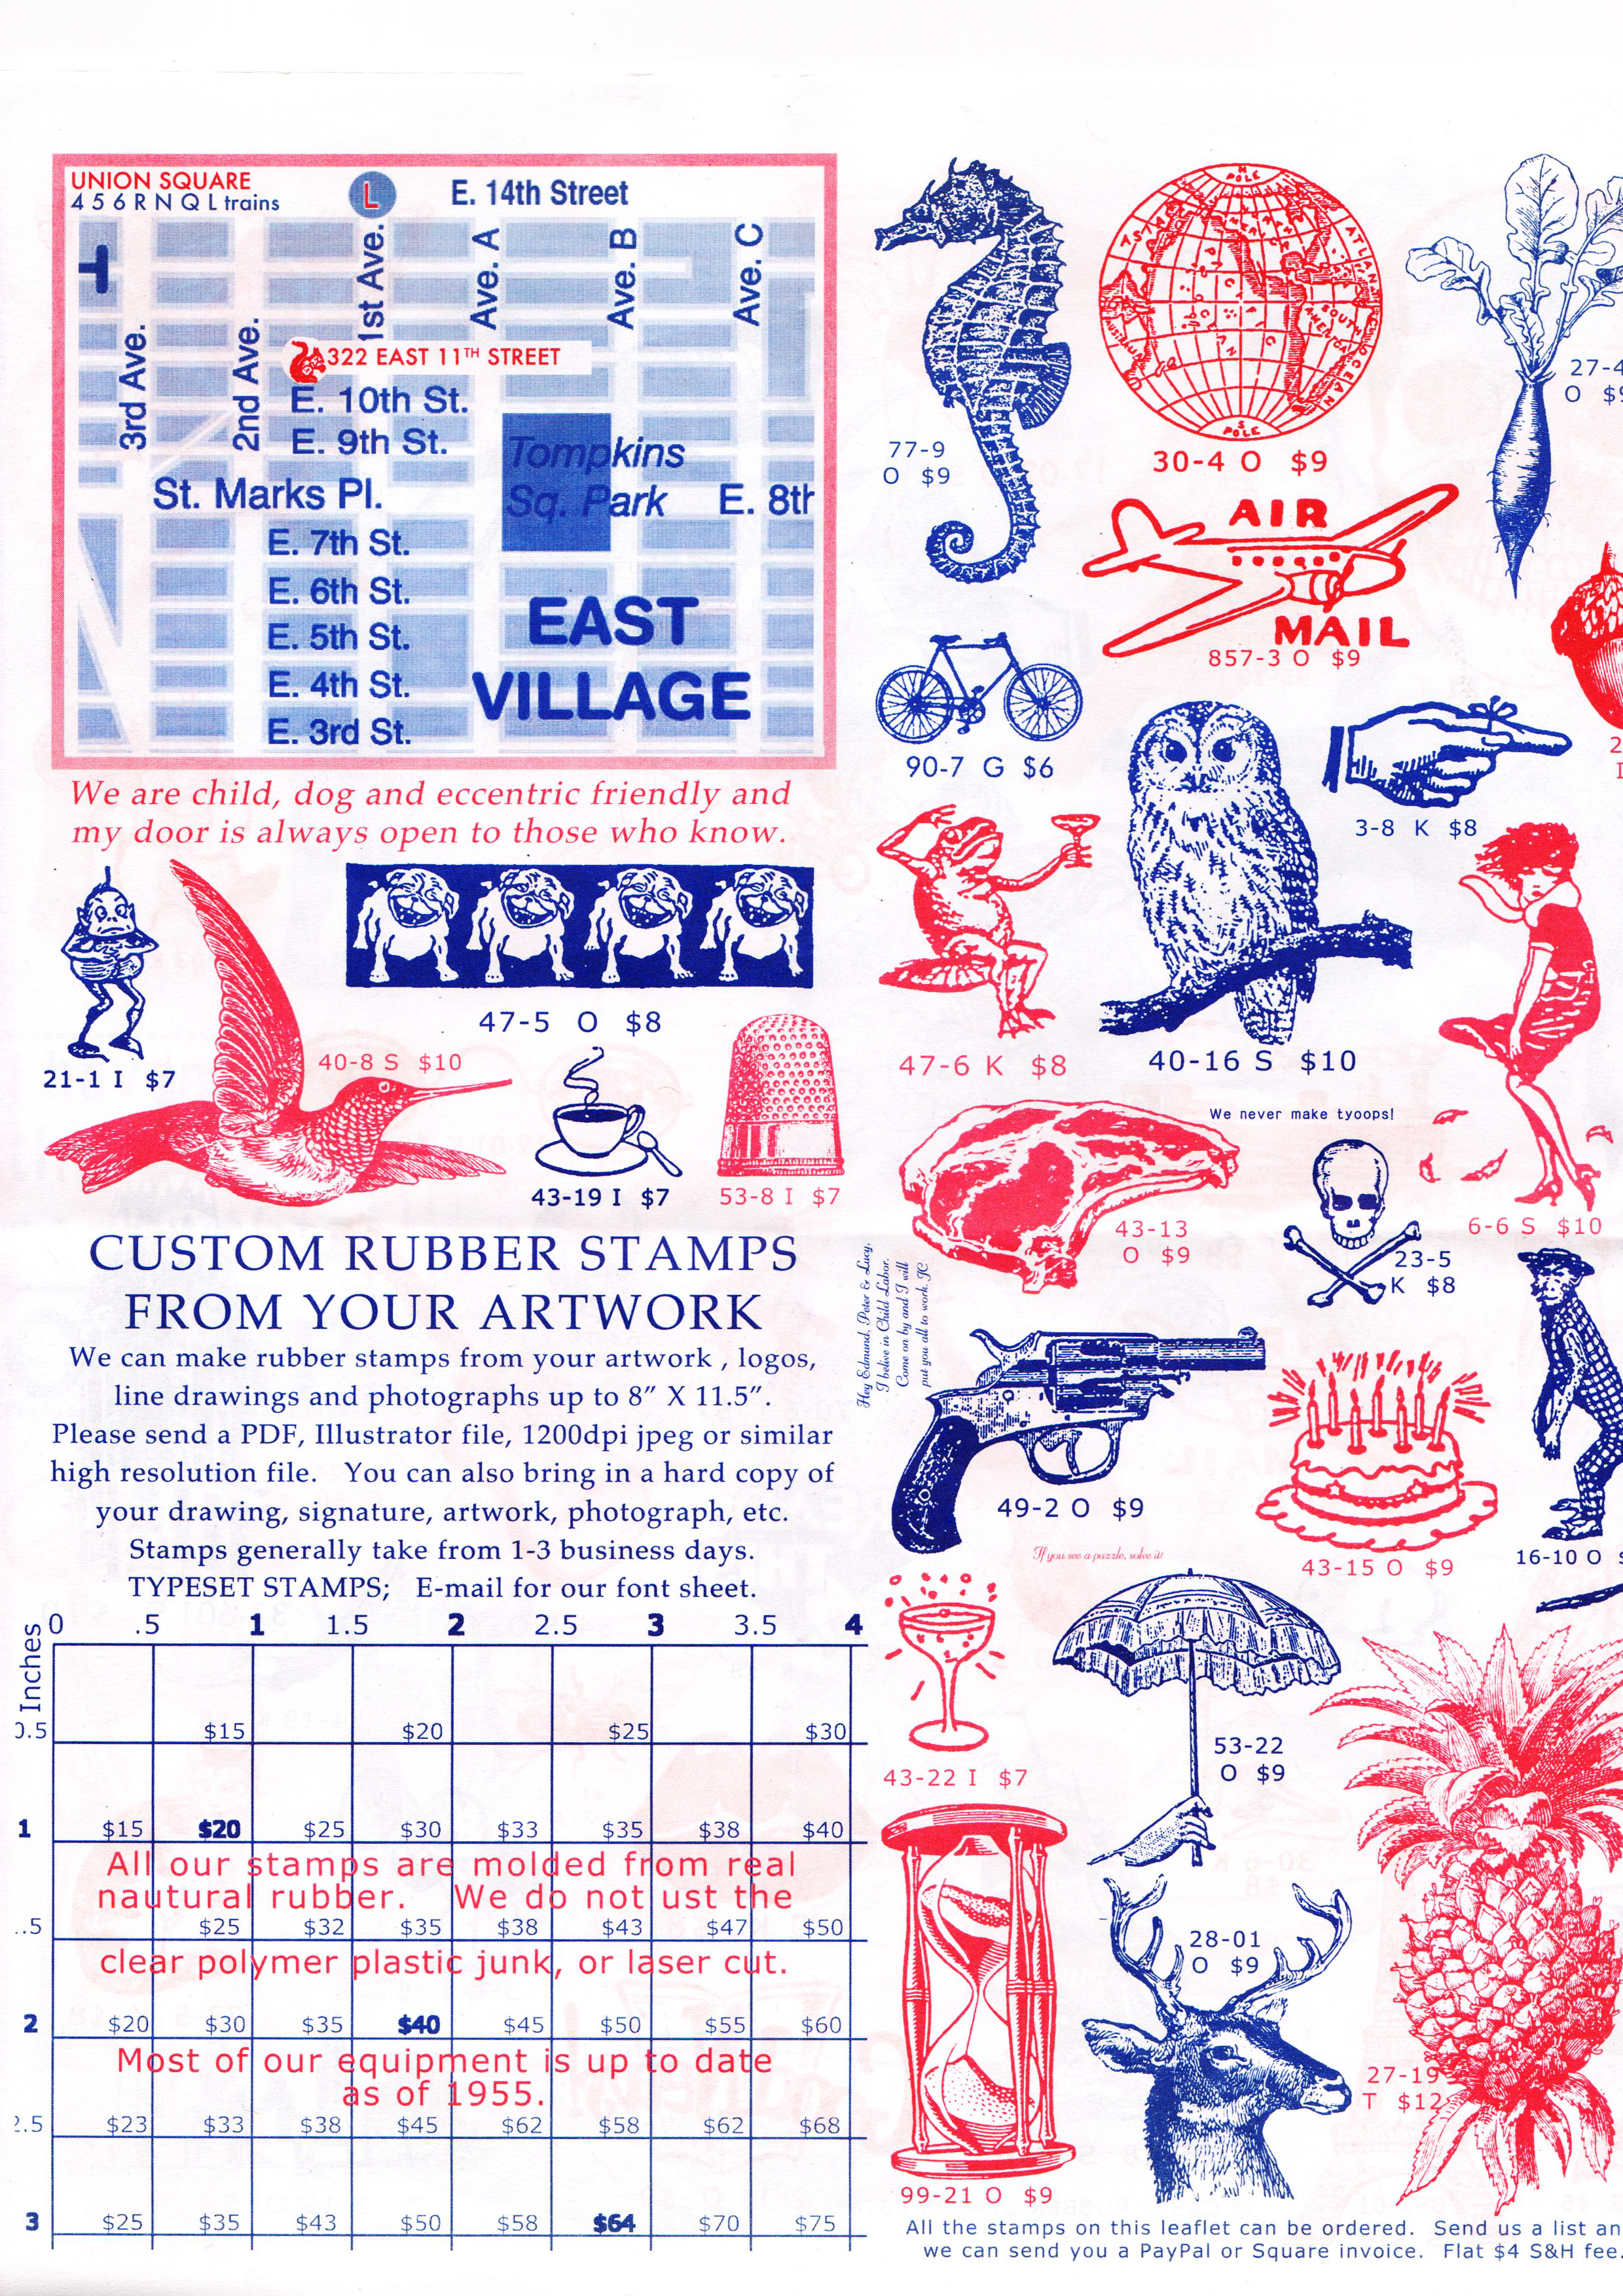 Rubber Stamp Examples 2.jpg